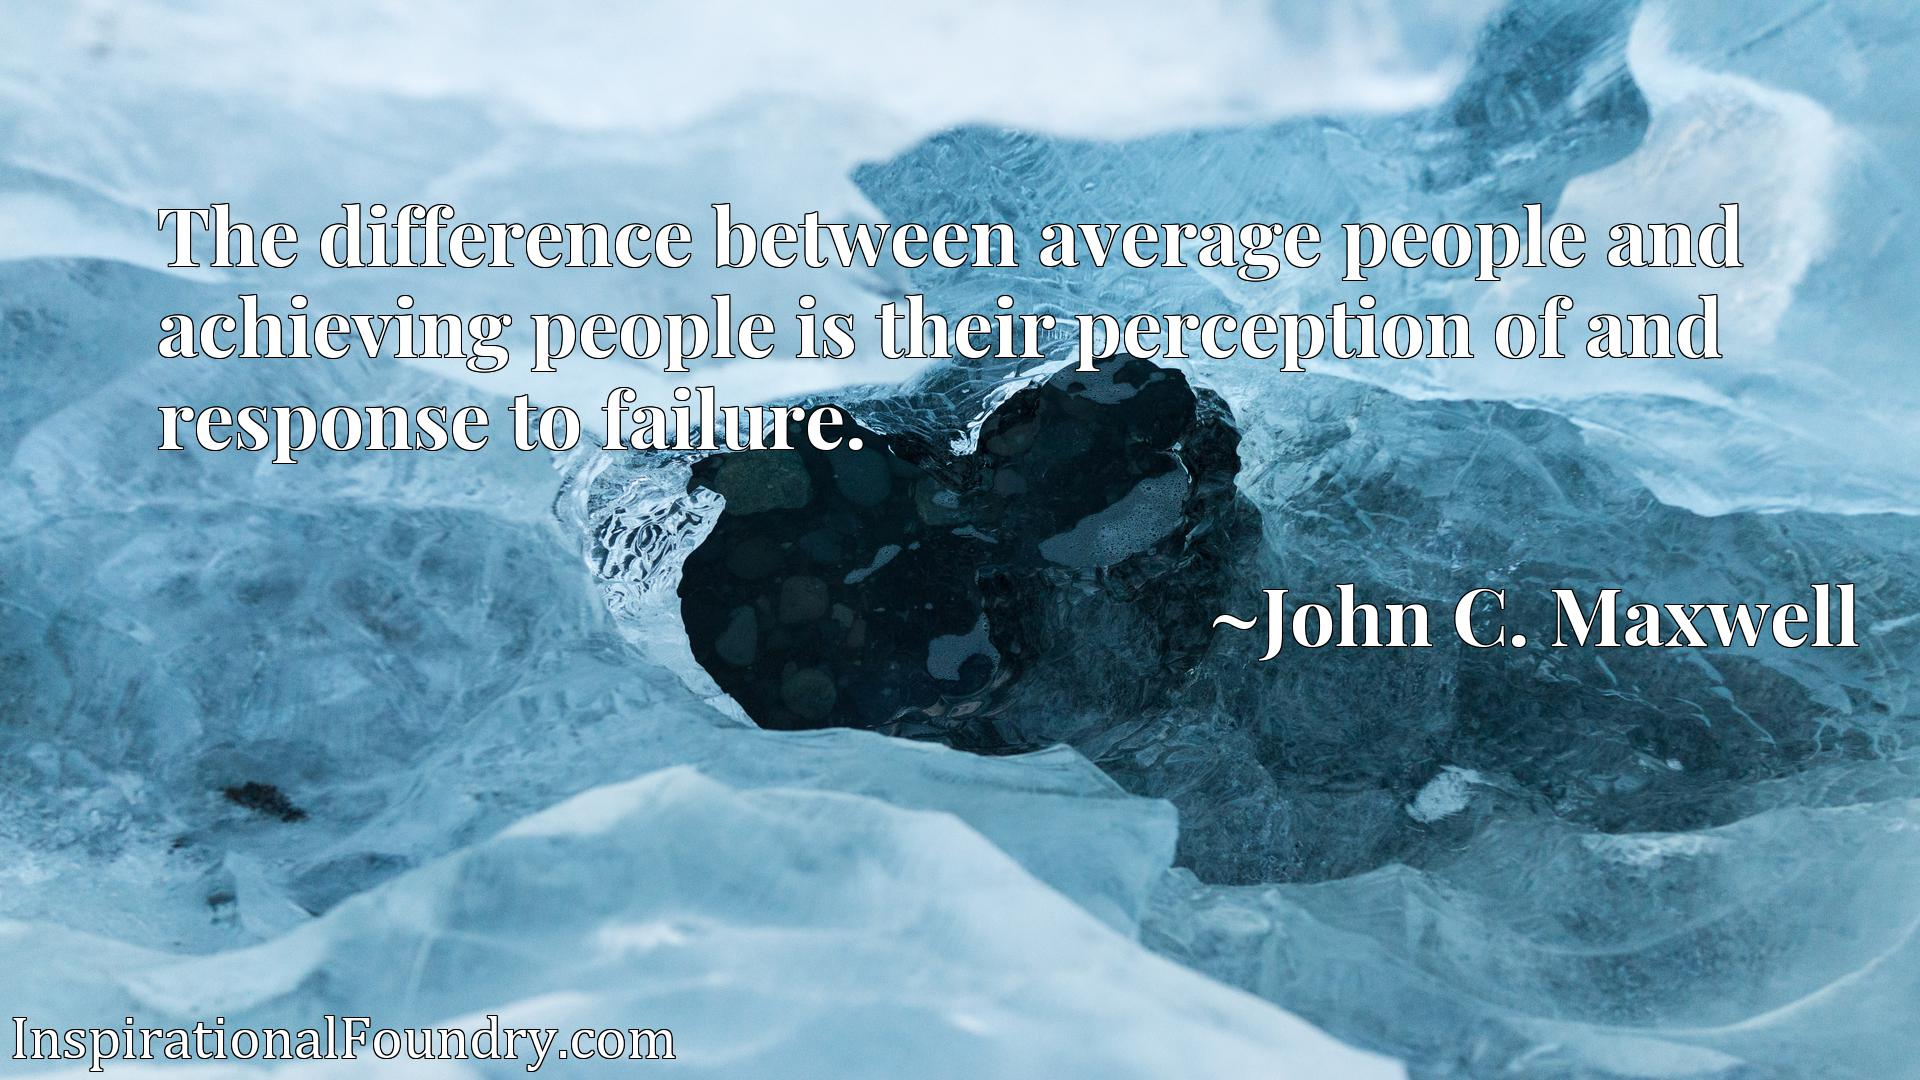 The difference between average people and achieving people is their perception of and response to failure.